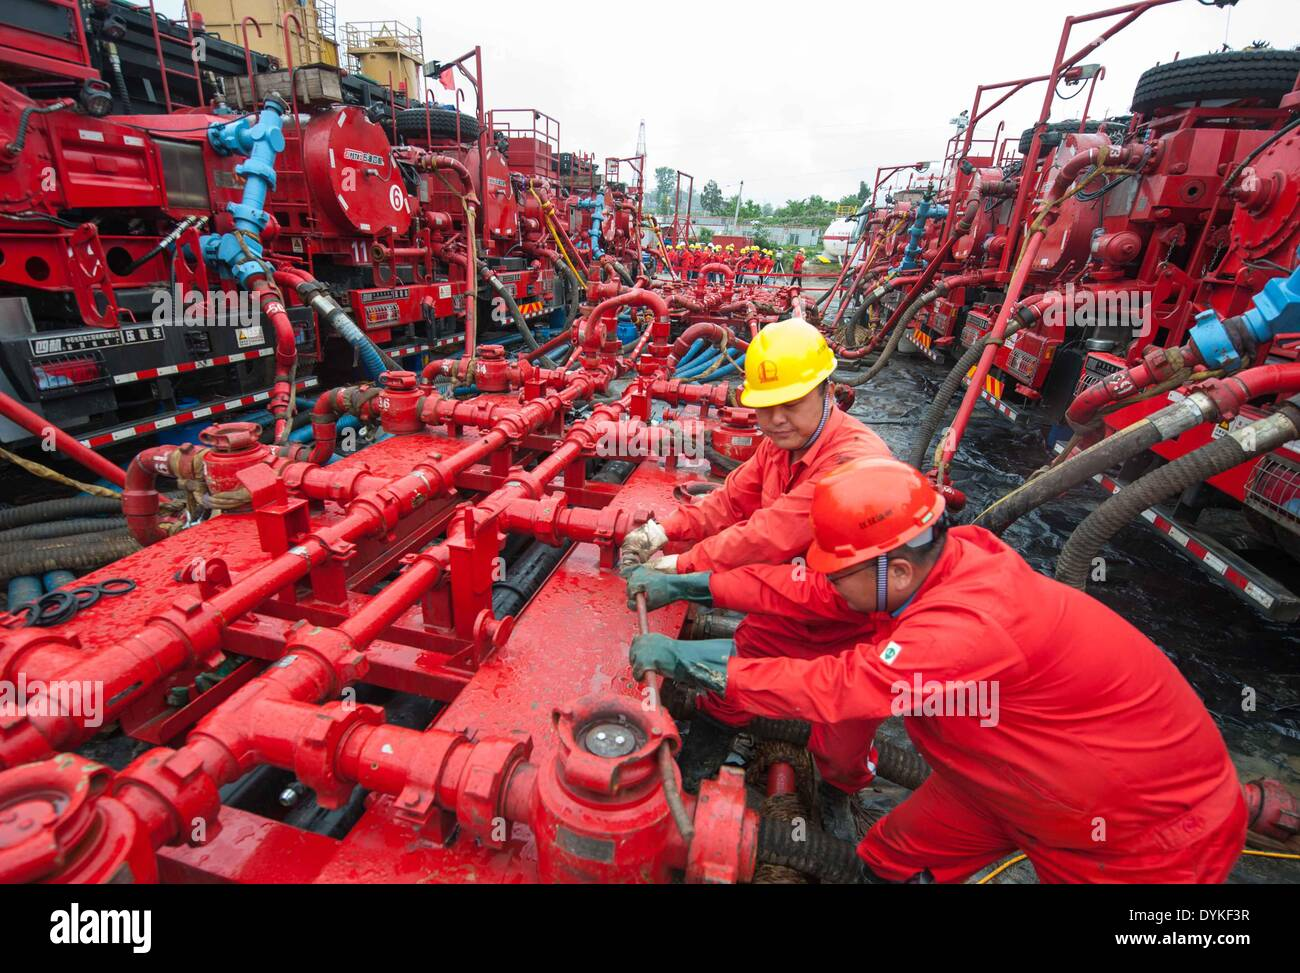 Chongqing, China. 21st Apr, 2014. Workers disassemble facilities after a trial operation at the Fuling work zone Stock Photo